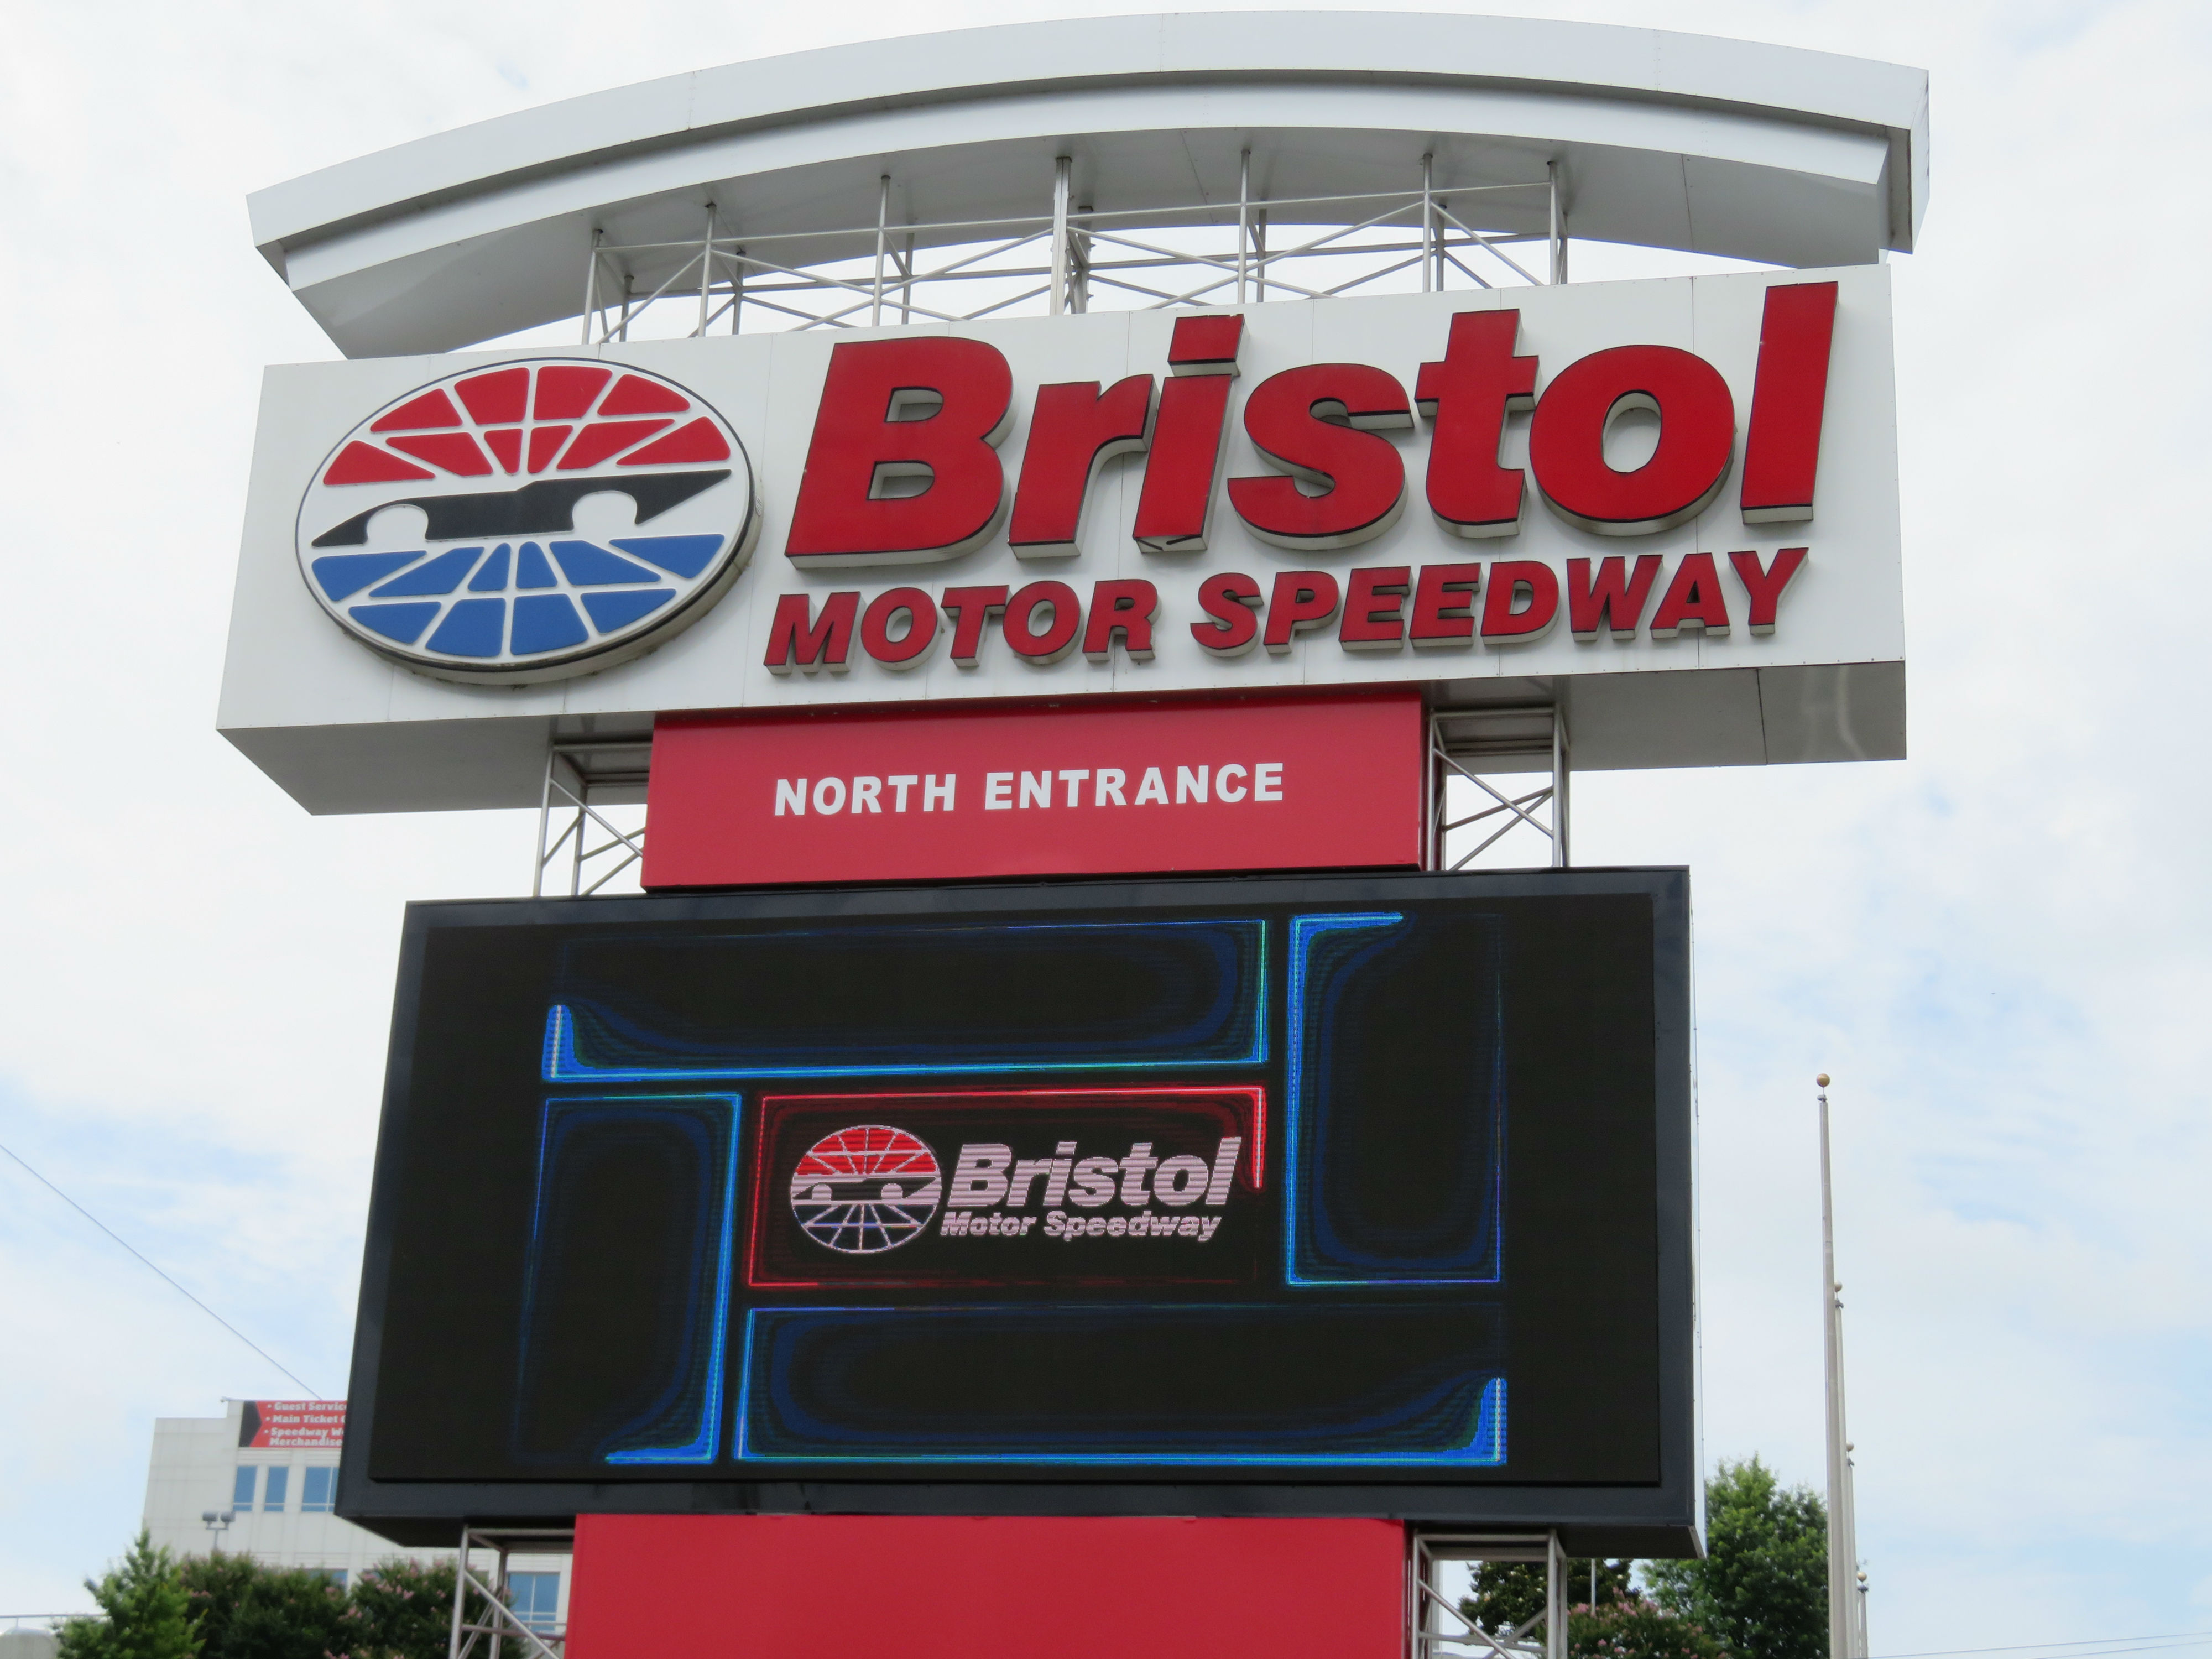 Closest airport to bristol motor speedway for Hotels near bristol motor speedway and dragway